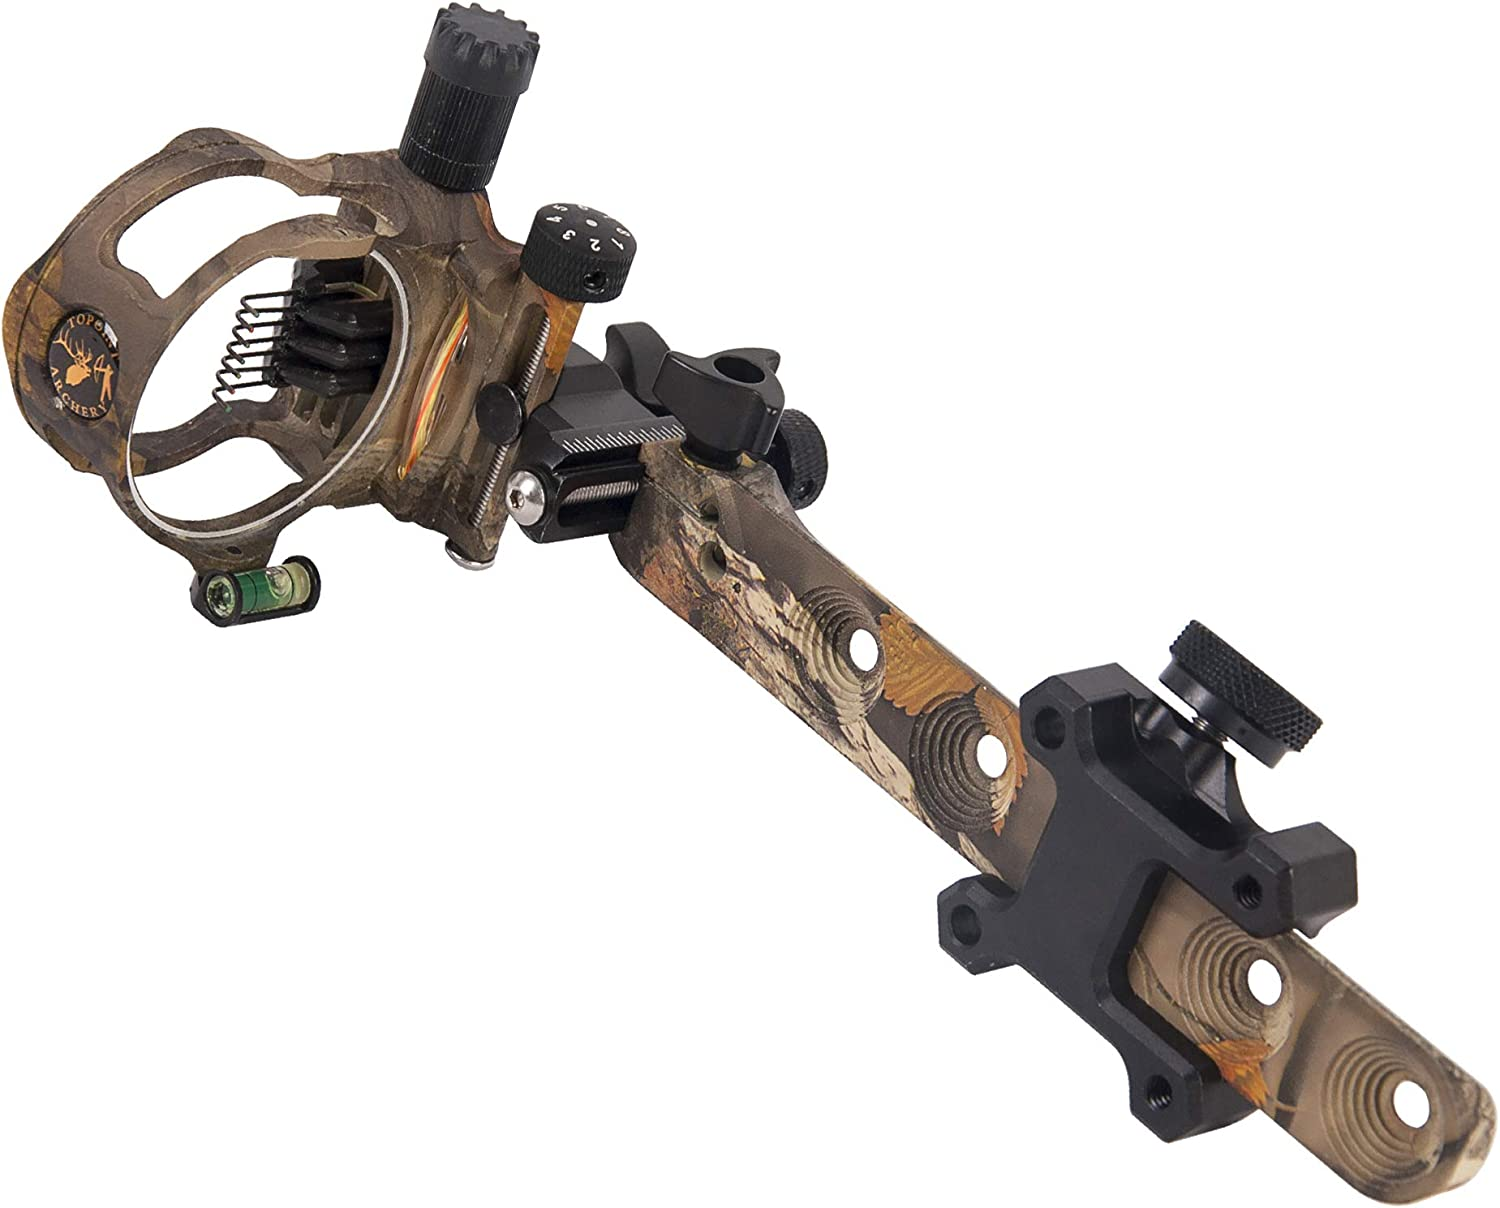 TOPOINT ARCHERY CNC Aluminum 5 Pins Or 7 Pins .019 Tool-Less Bow Sight with Micro Adjust Detachable Bracket LED Sight Light Left and Right Hand